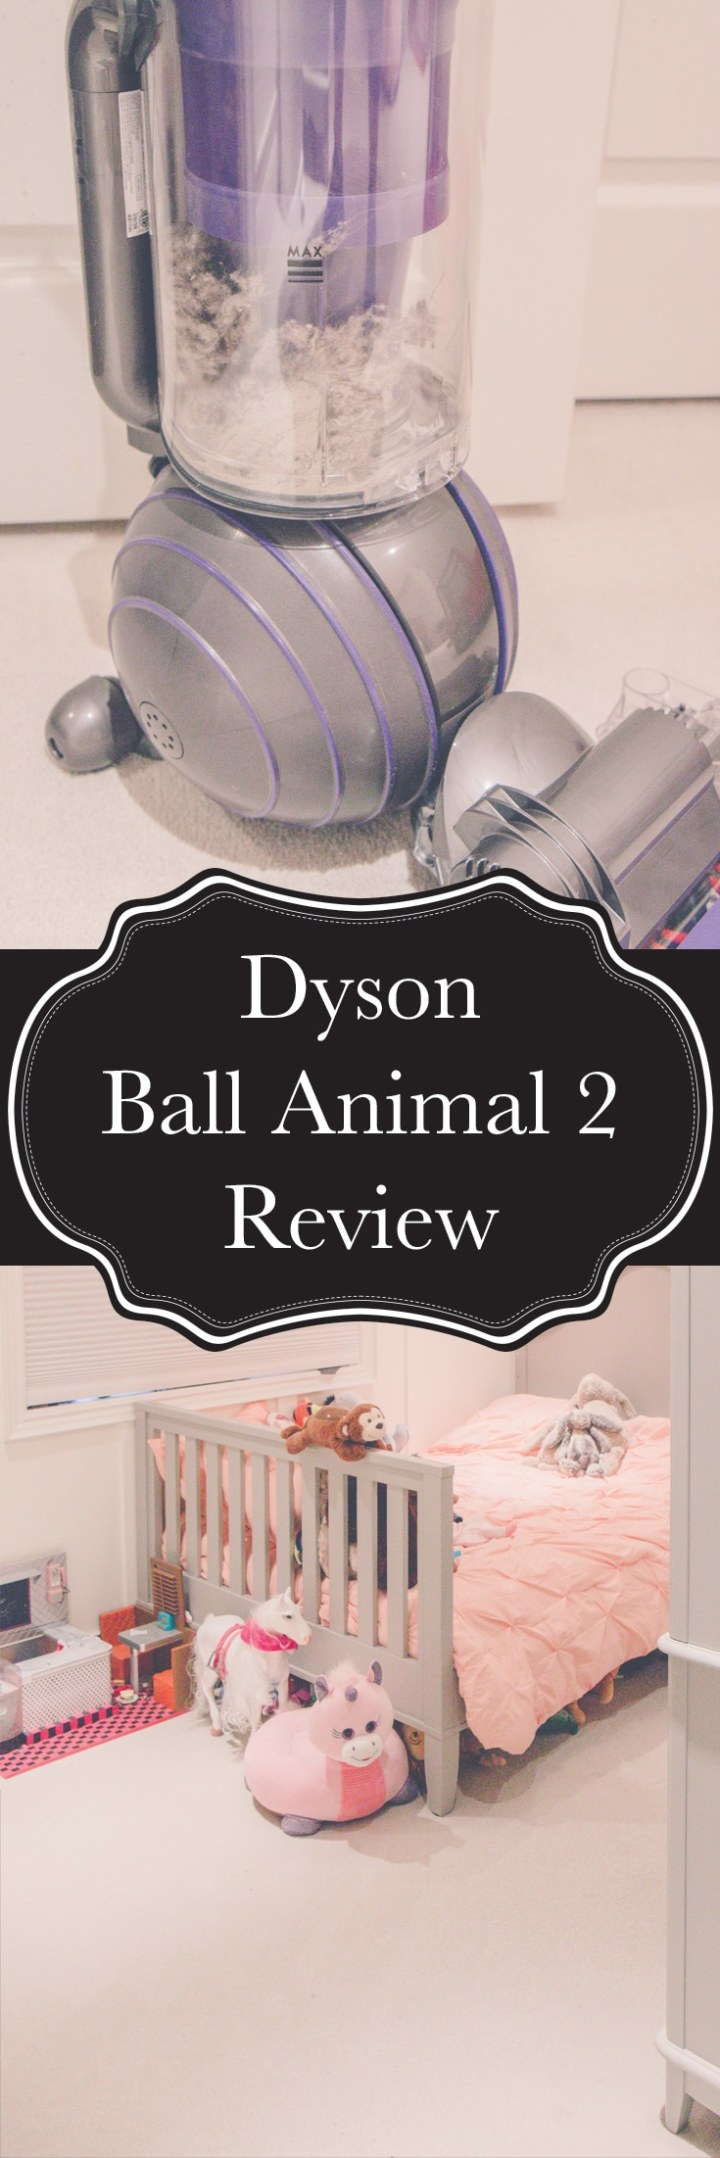 My review of the Dyson Ball Animal 2 and all the surprising ways it made my life easier, and saved me hours from my usual cleaning routine!